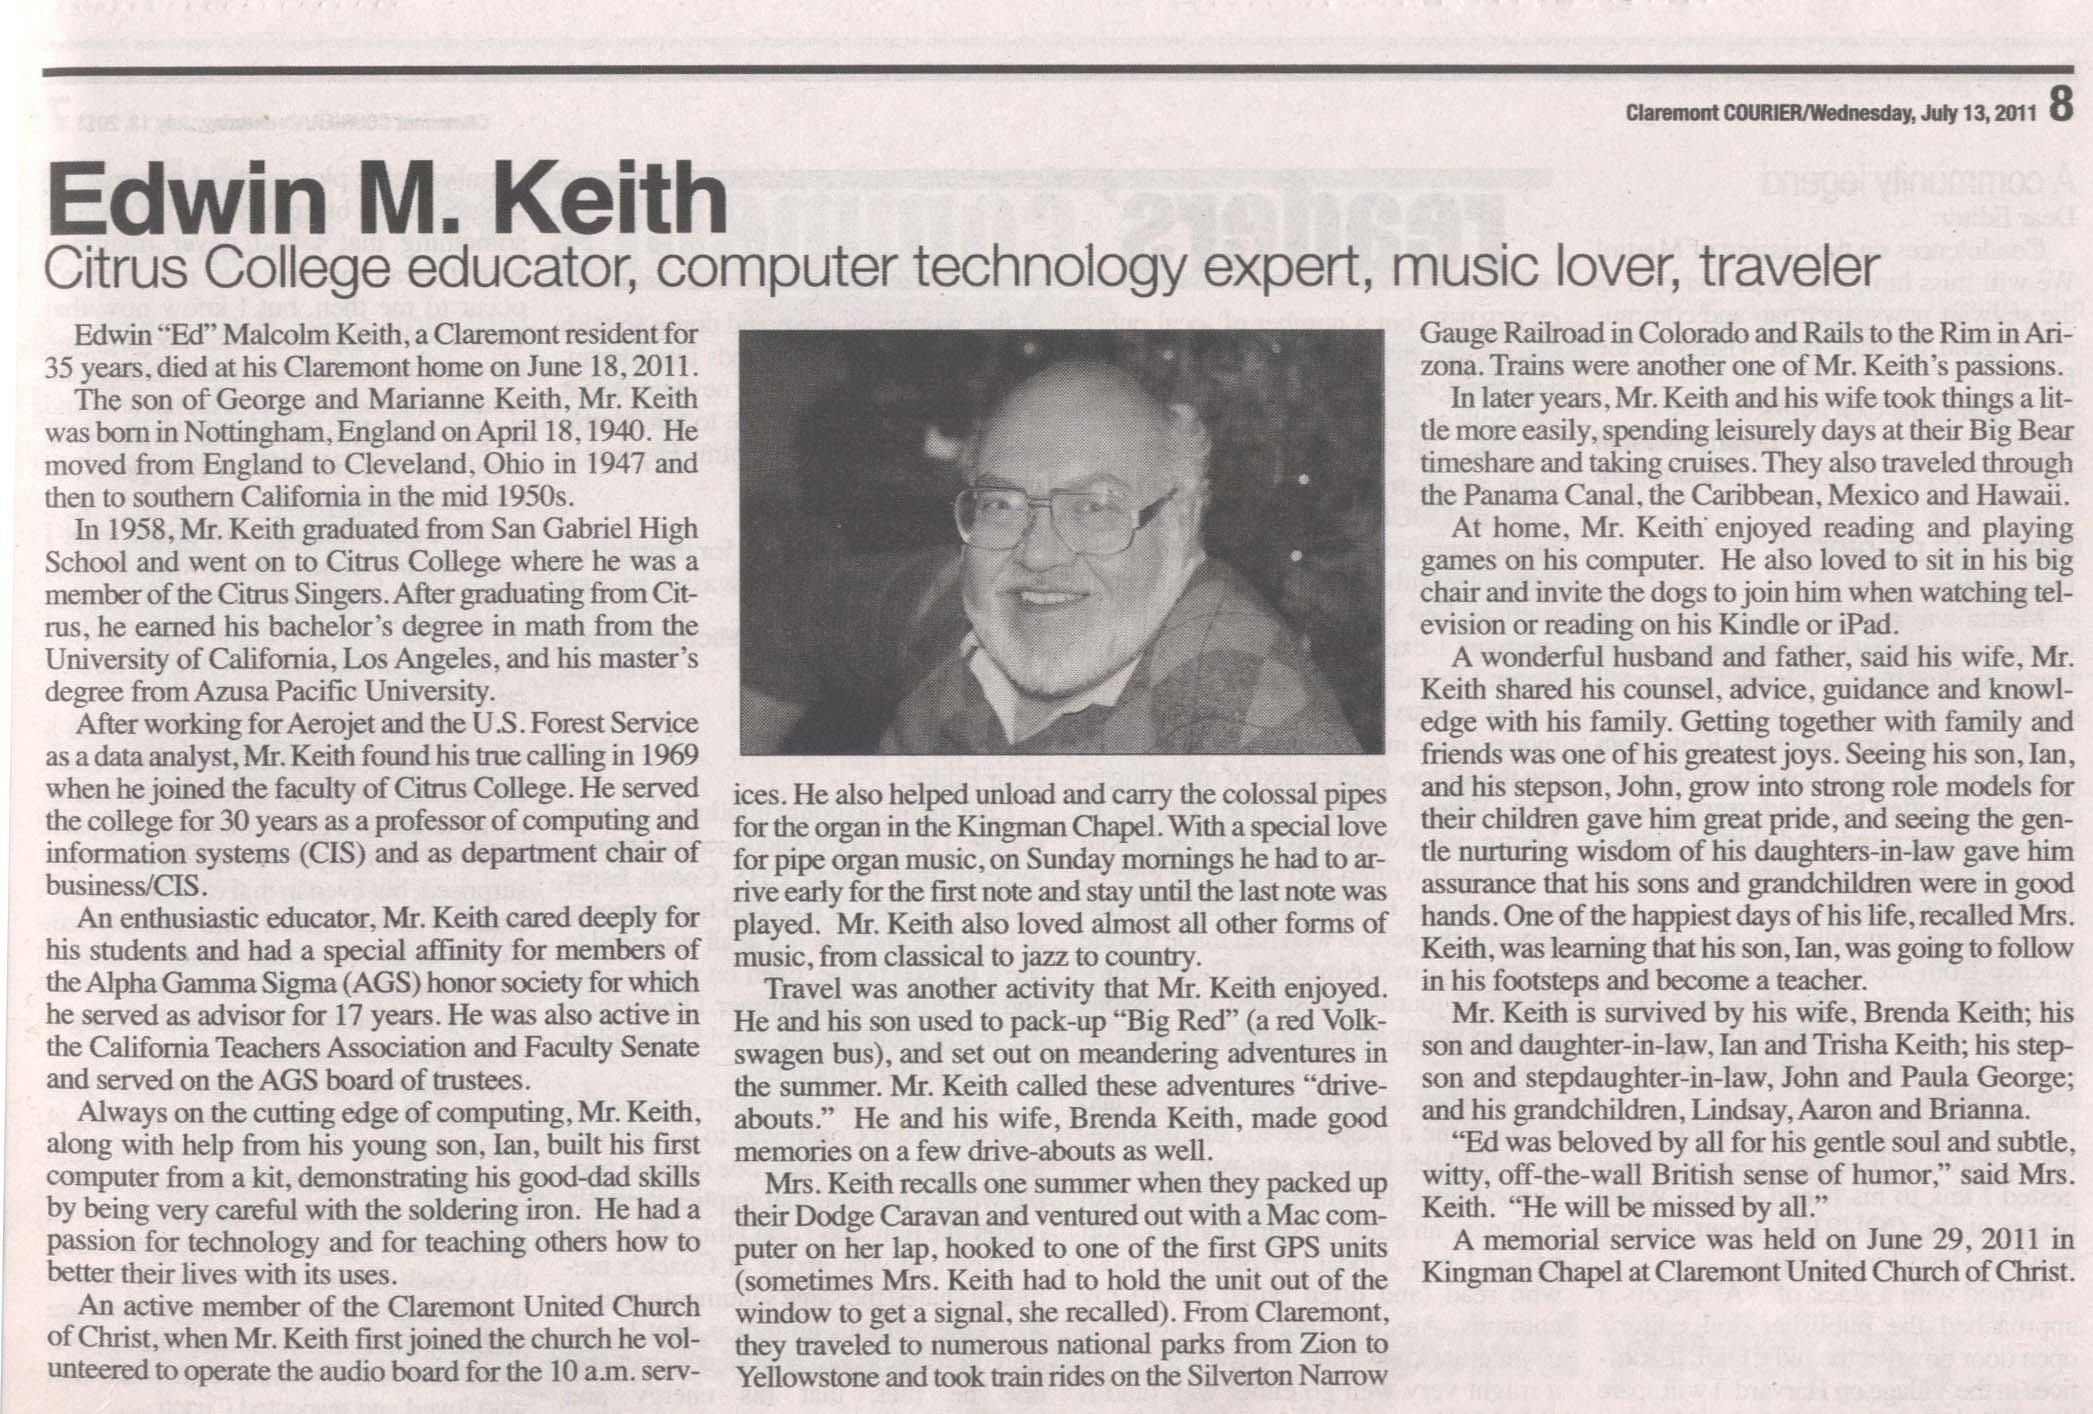 Ed Keith Obituary June 18, 2011